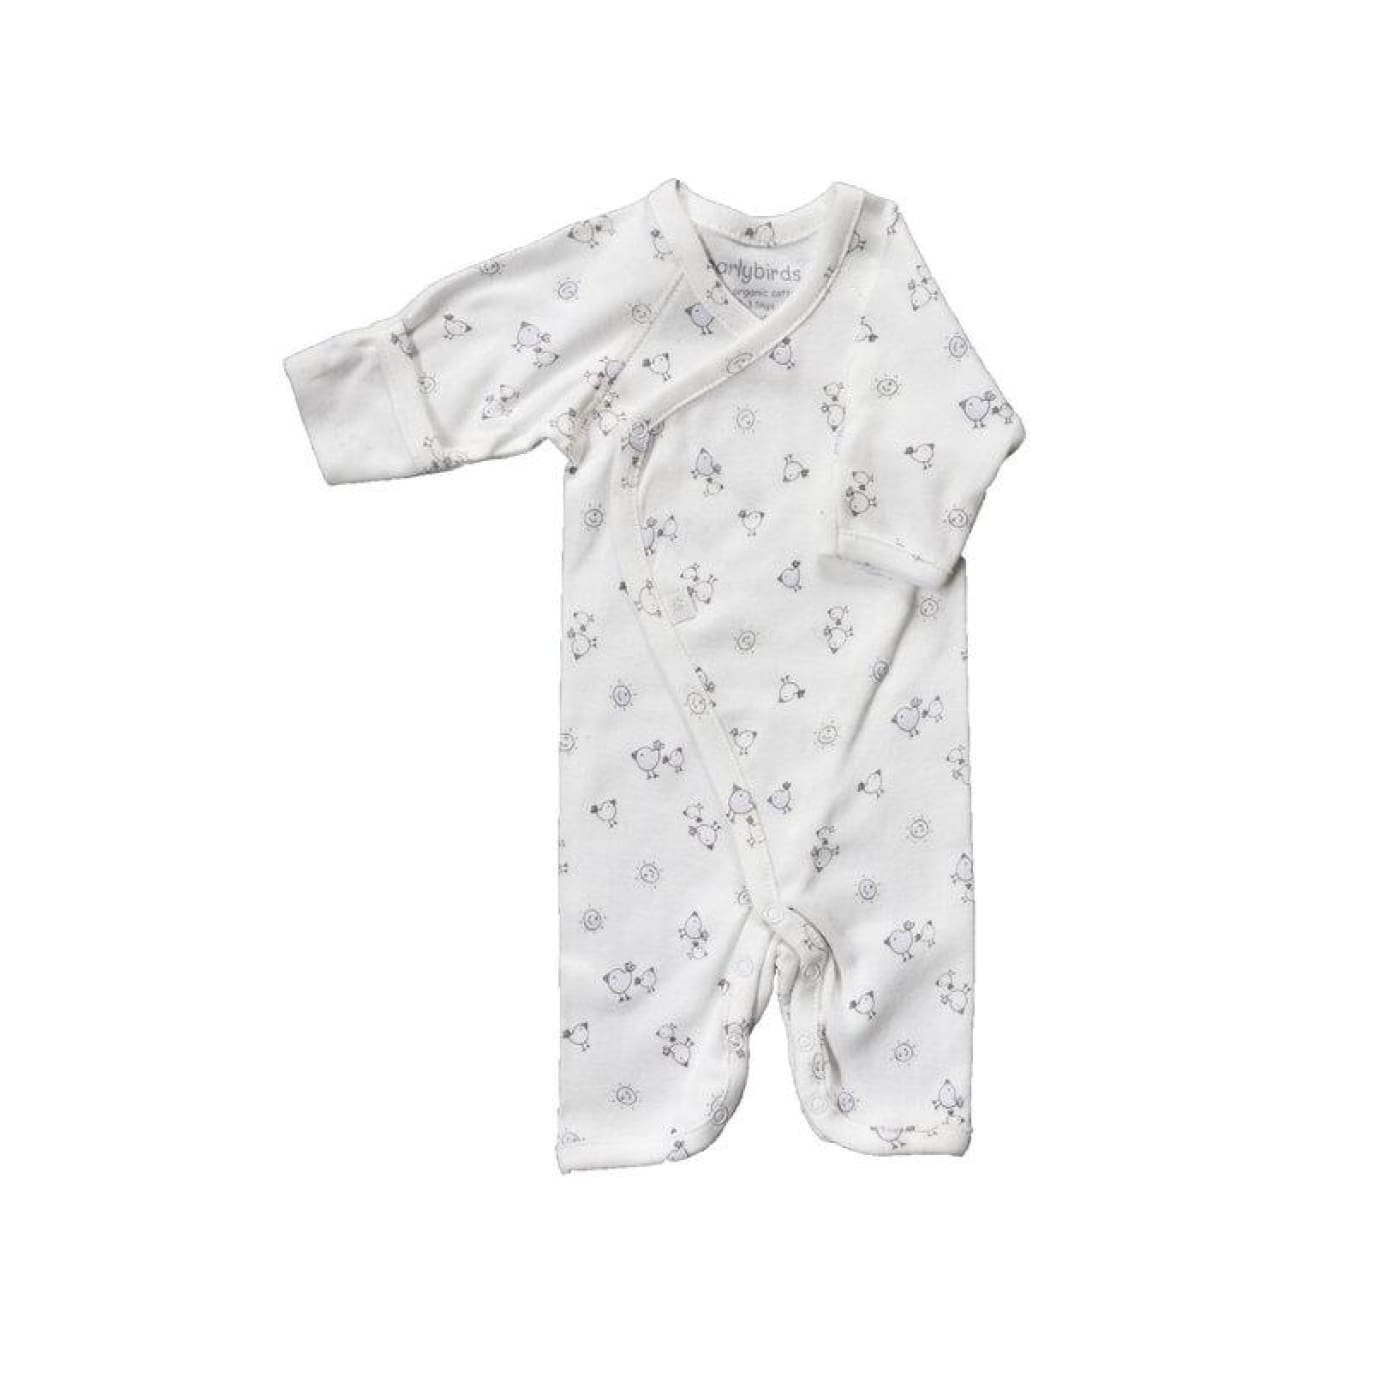 Earlybirds Organics Jumpsuit M - BABY & TODDLER CLOTHING - BODYSUITS/SETS/MIX-MATCH